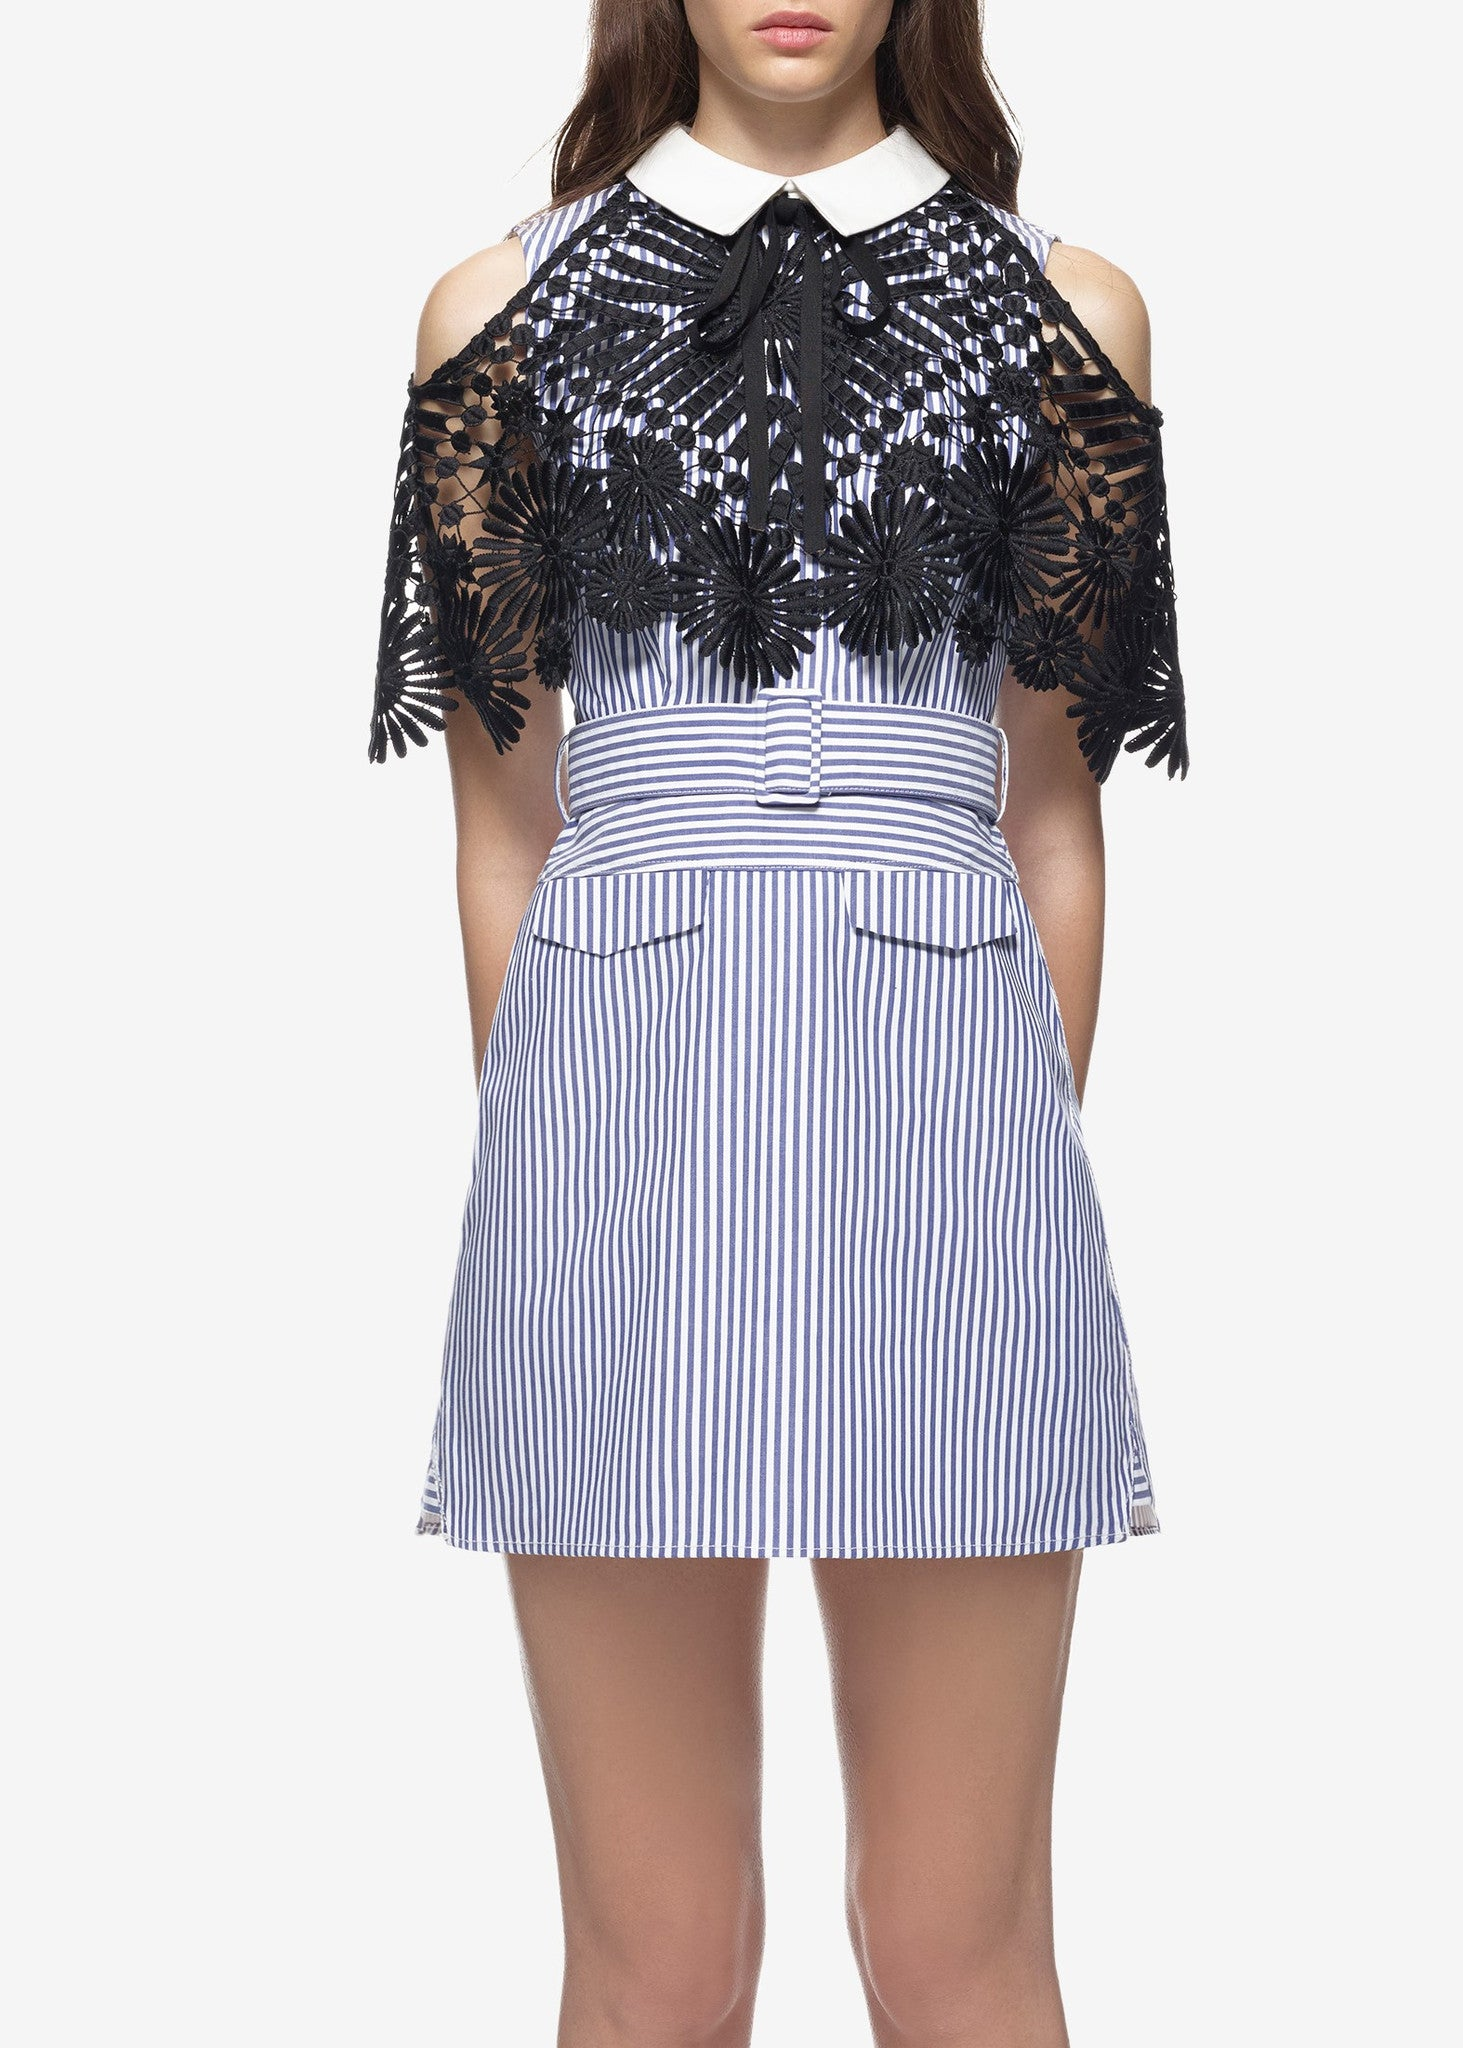 Self Portrait shirting lace cape mini dress navy